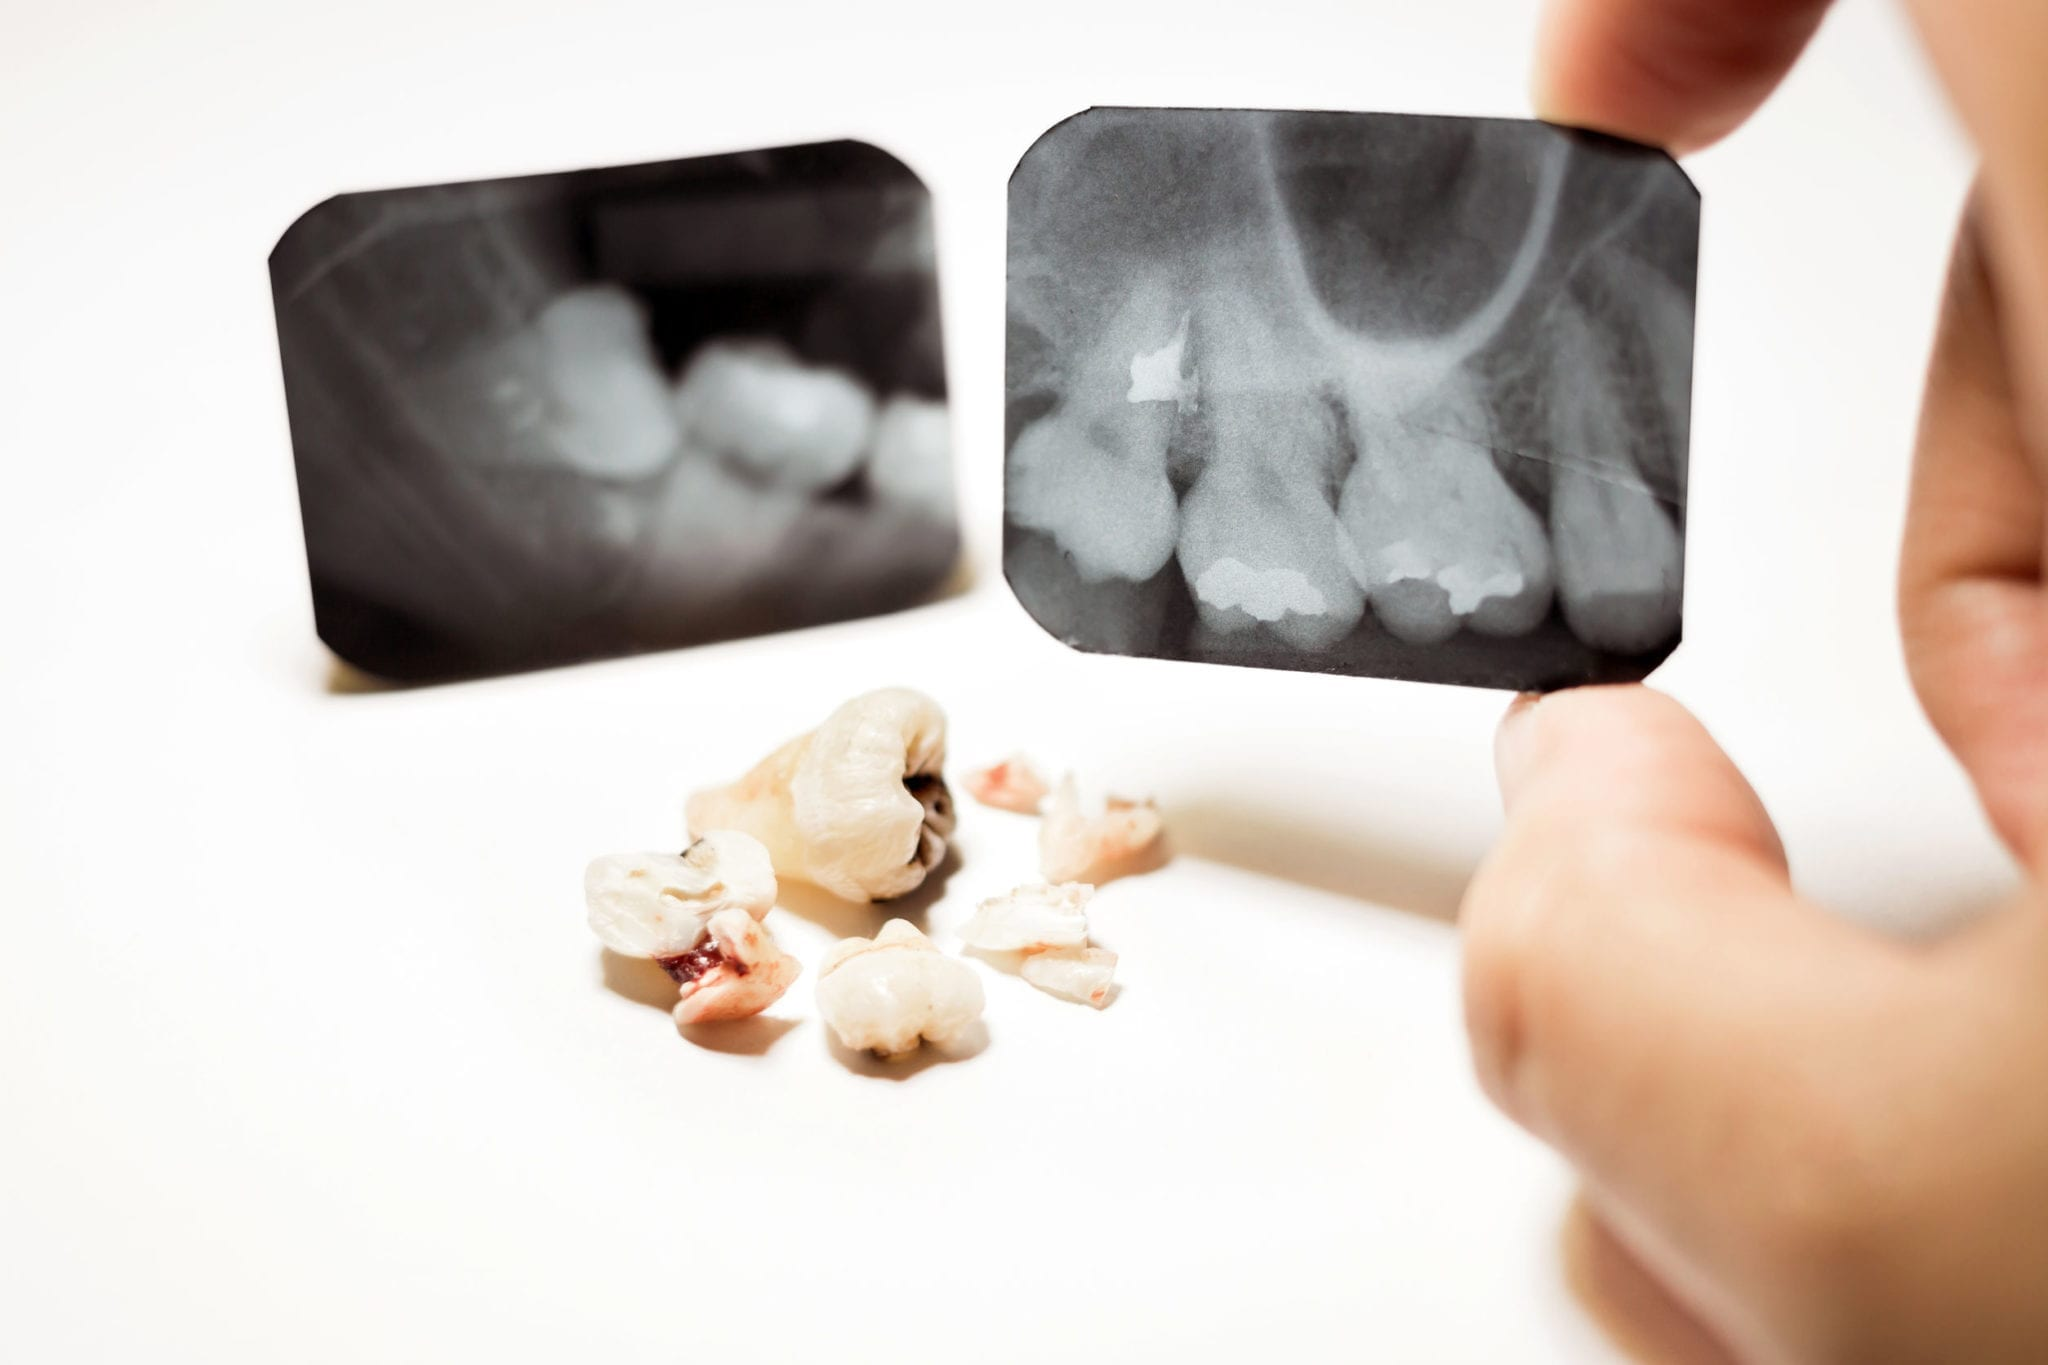 Elements of a Florida Dentist Malpractice Case